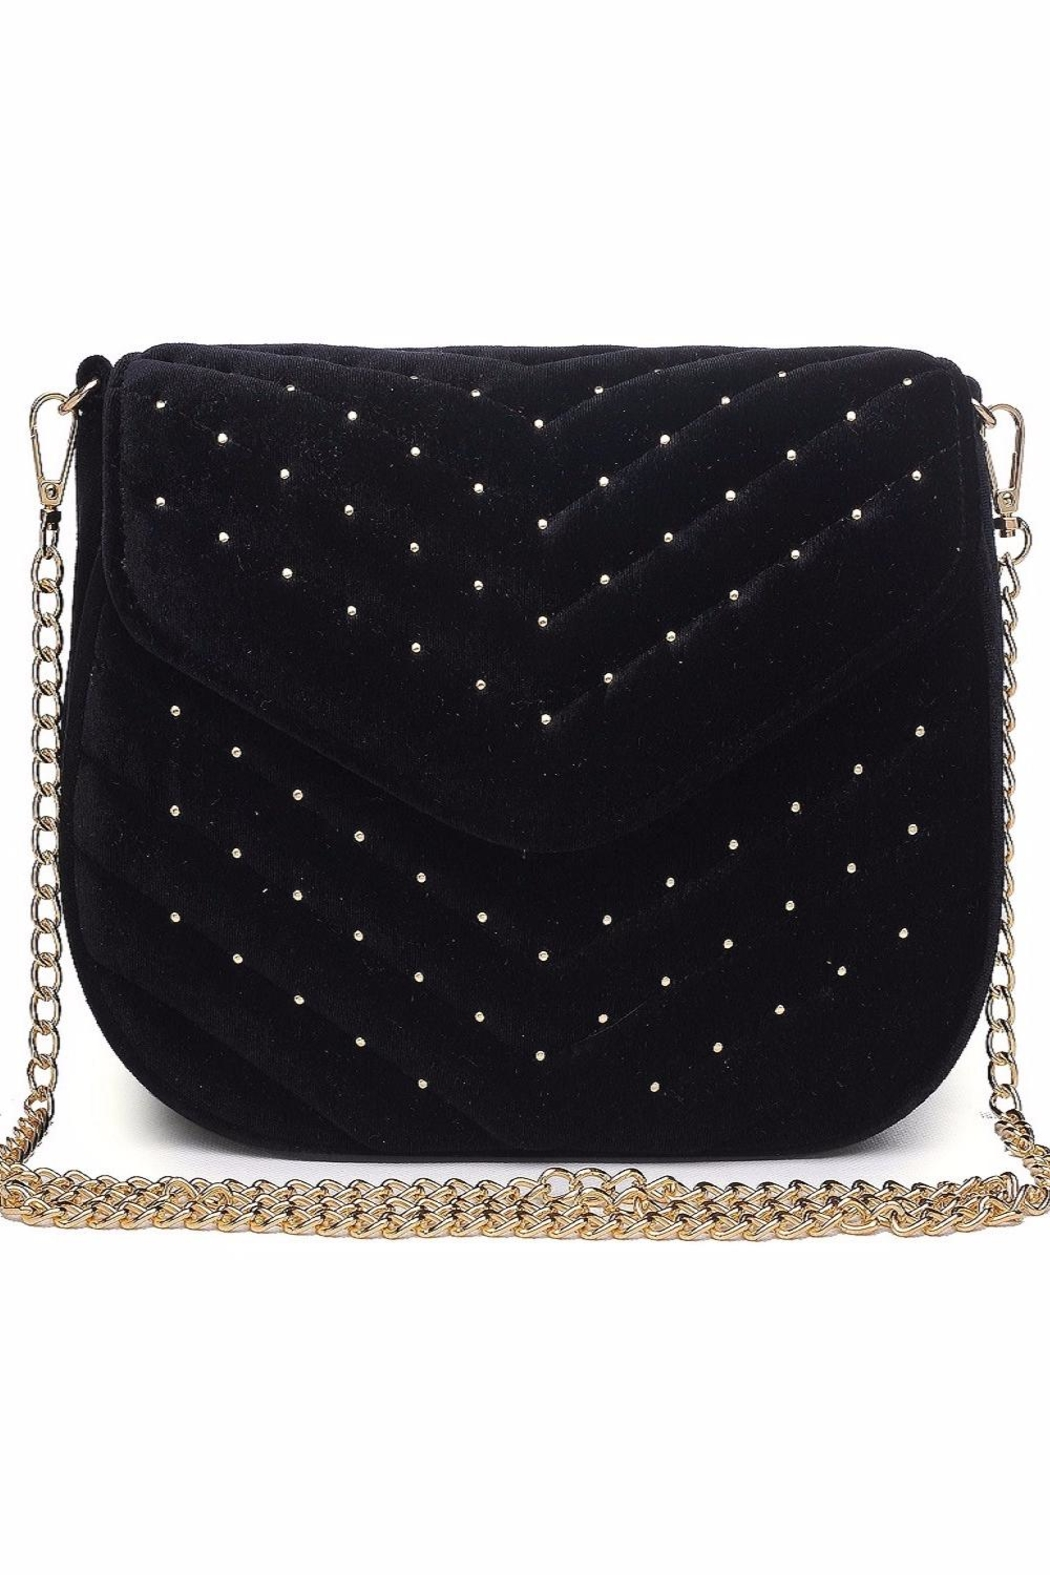 Urban Expressions Studded Velvet Clutch - Front Full Image